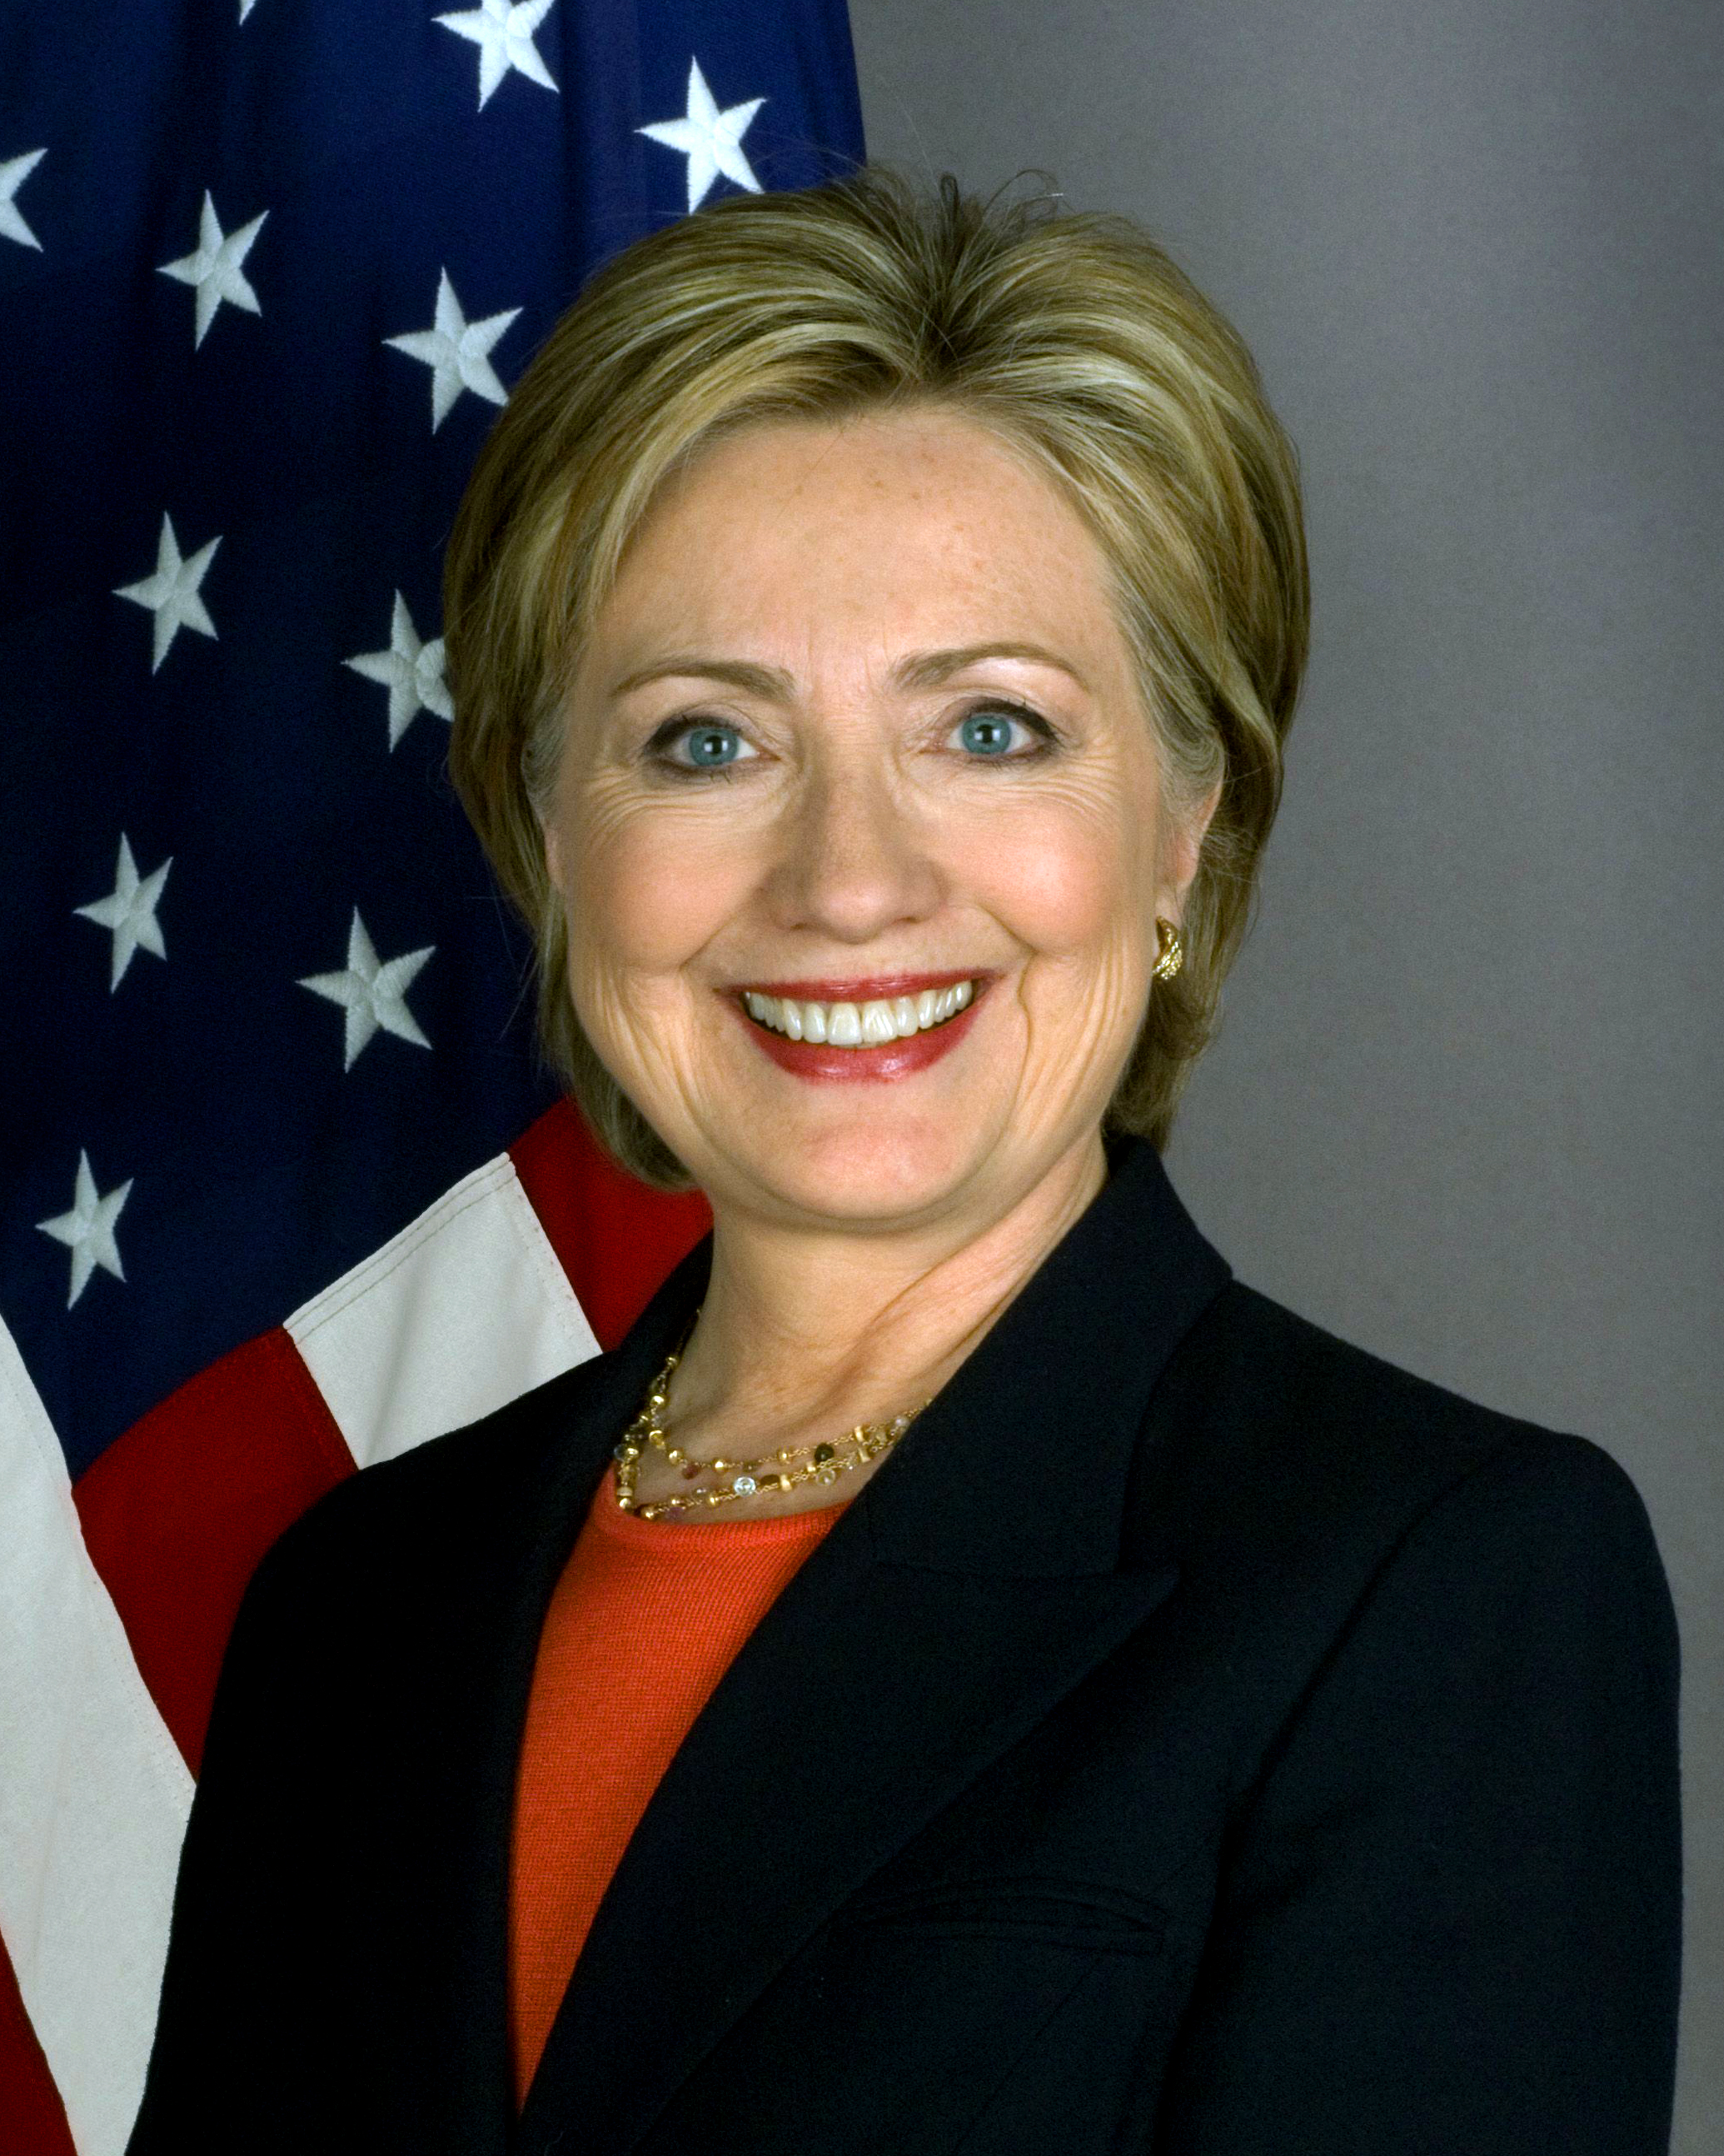 Description Hillary Clinton official Secretary of State portrait crop